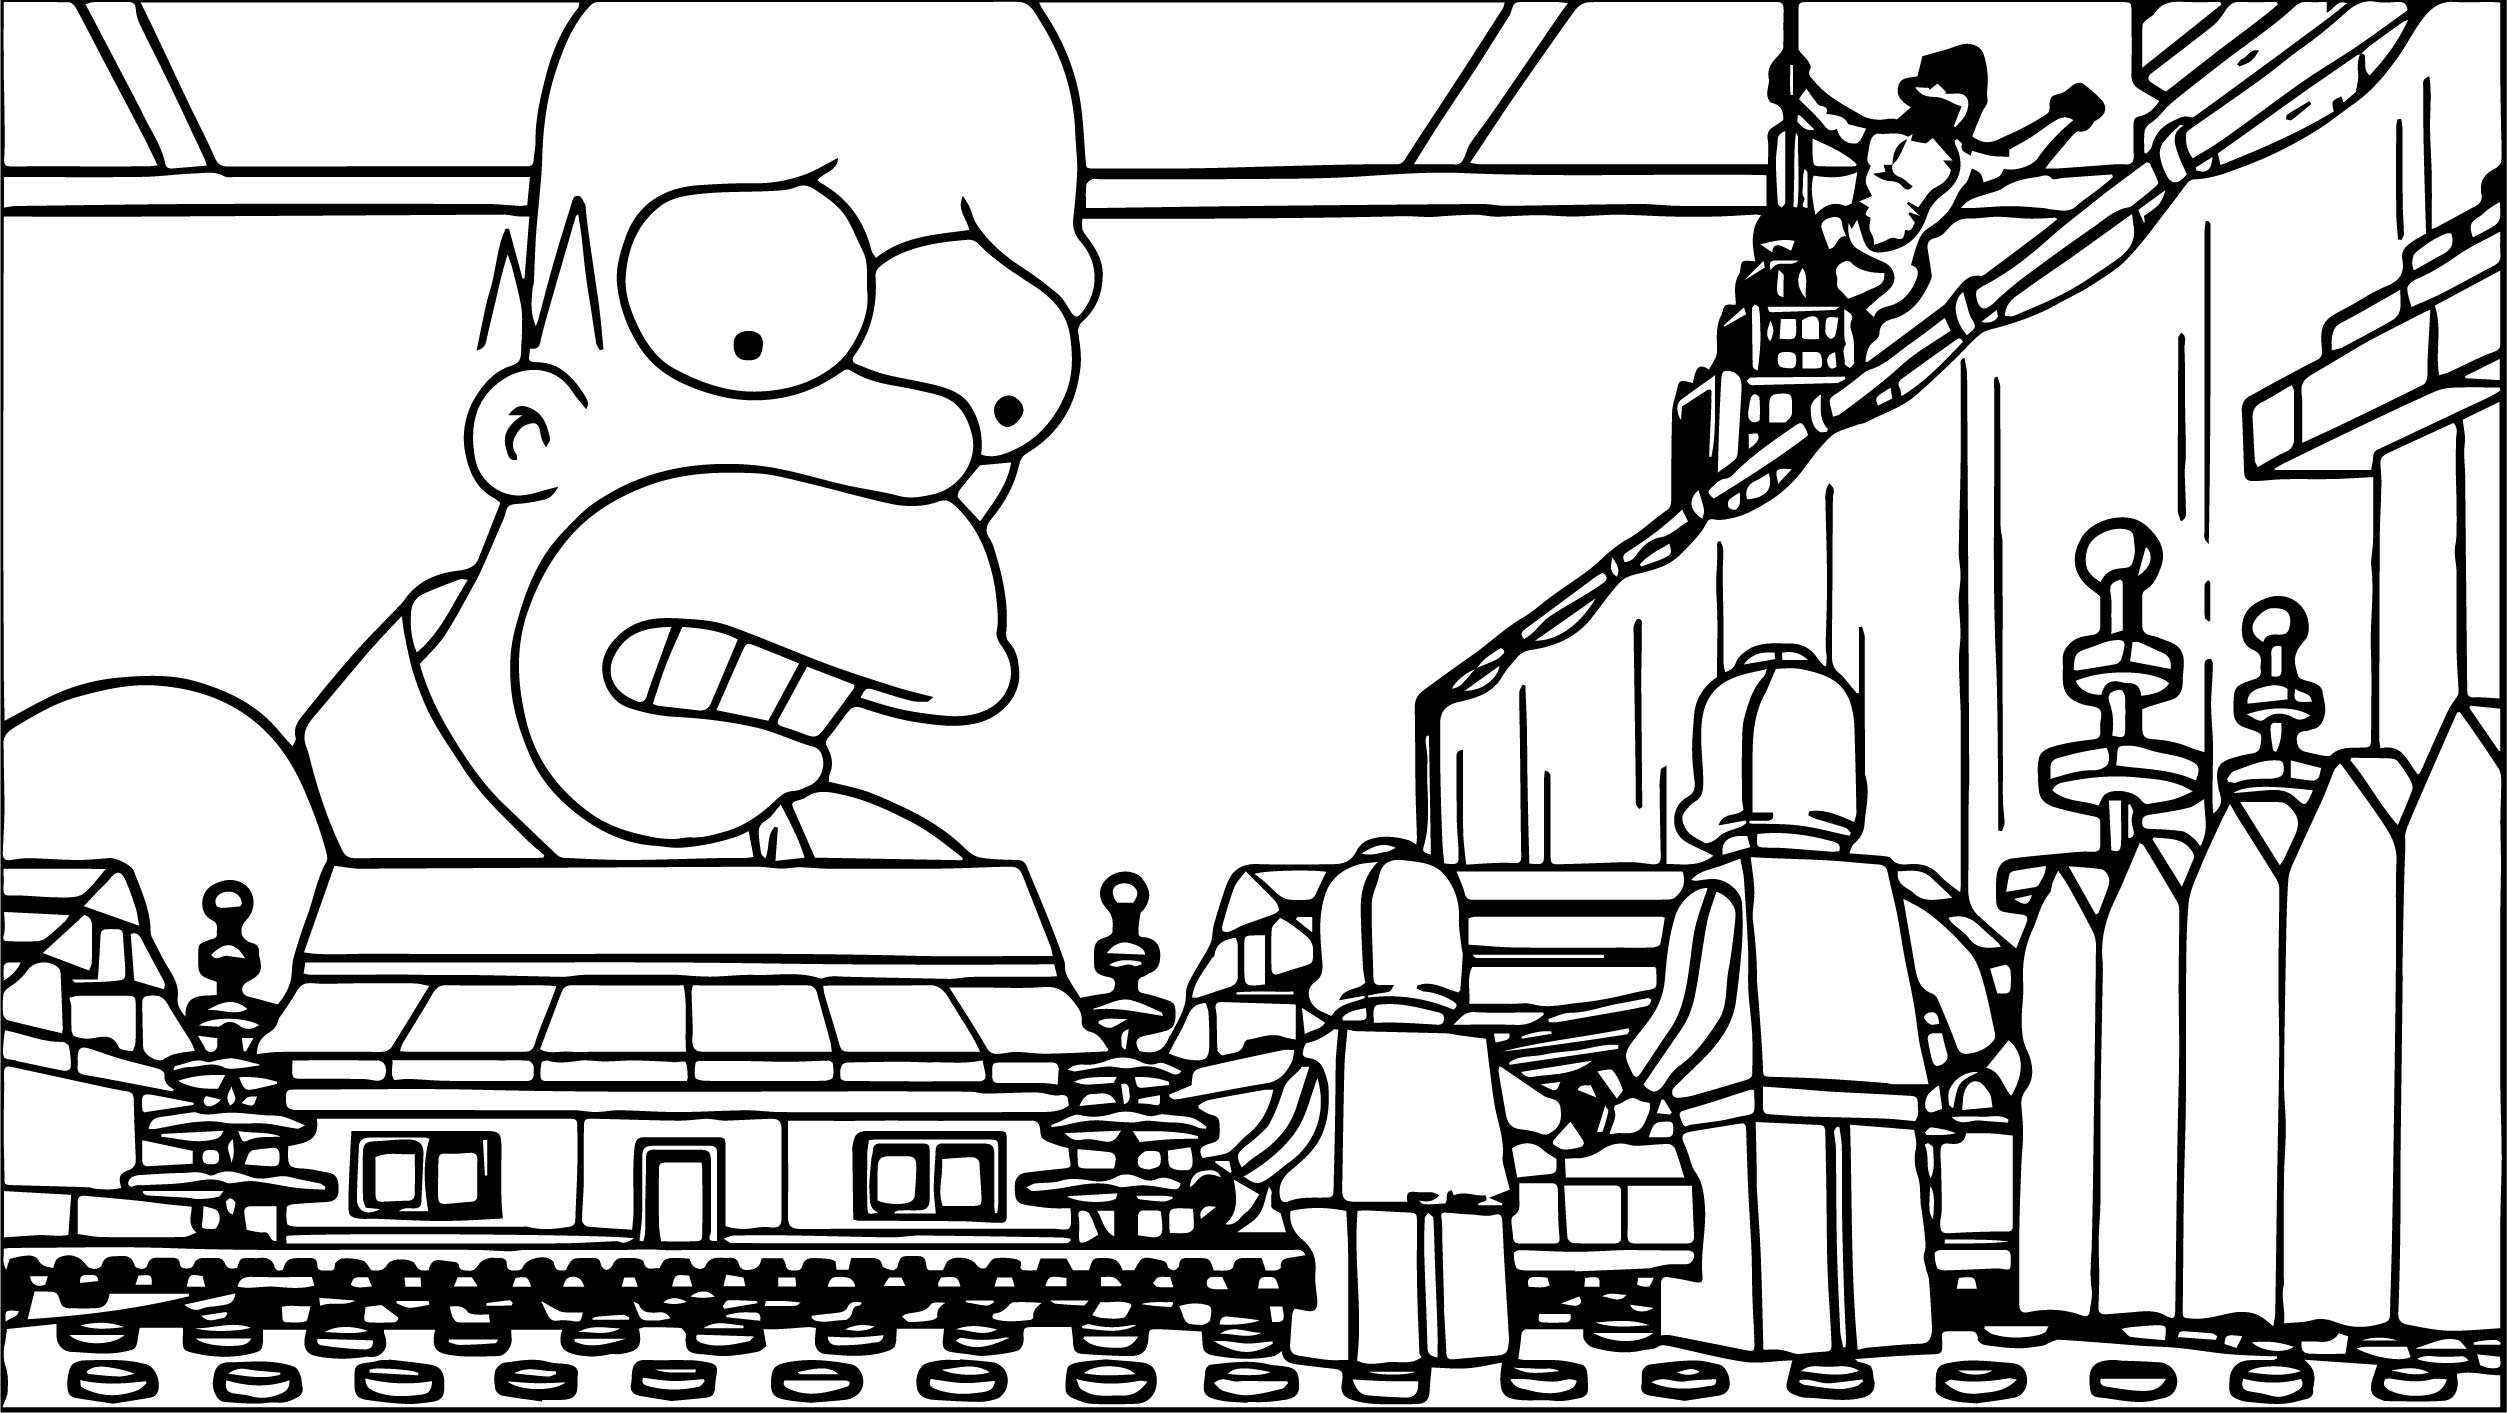 Coloring pages the simpsons - a-k-b.info